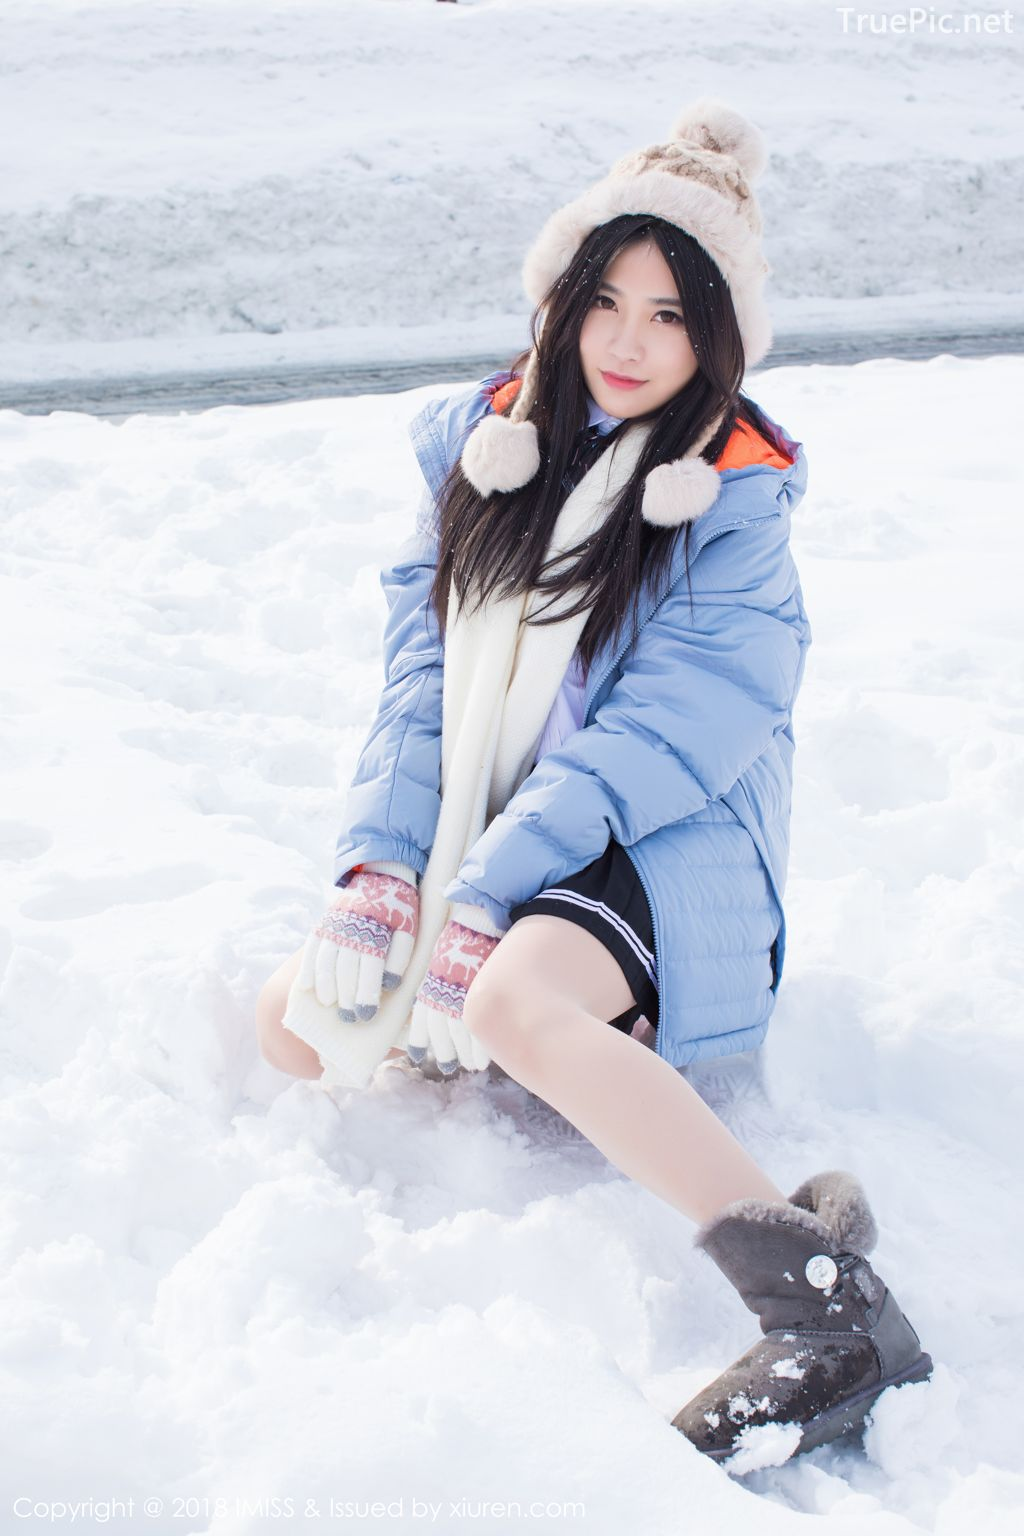 Image-IMISS-Vol.262-Sabrina model–Xu-Nuo-许诺-Sparkling-White-Snow-TruePic.net- Picture-1